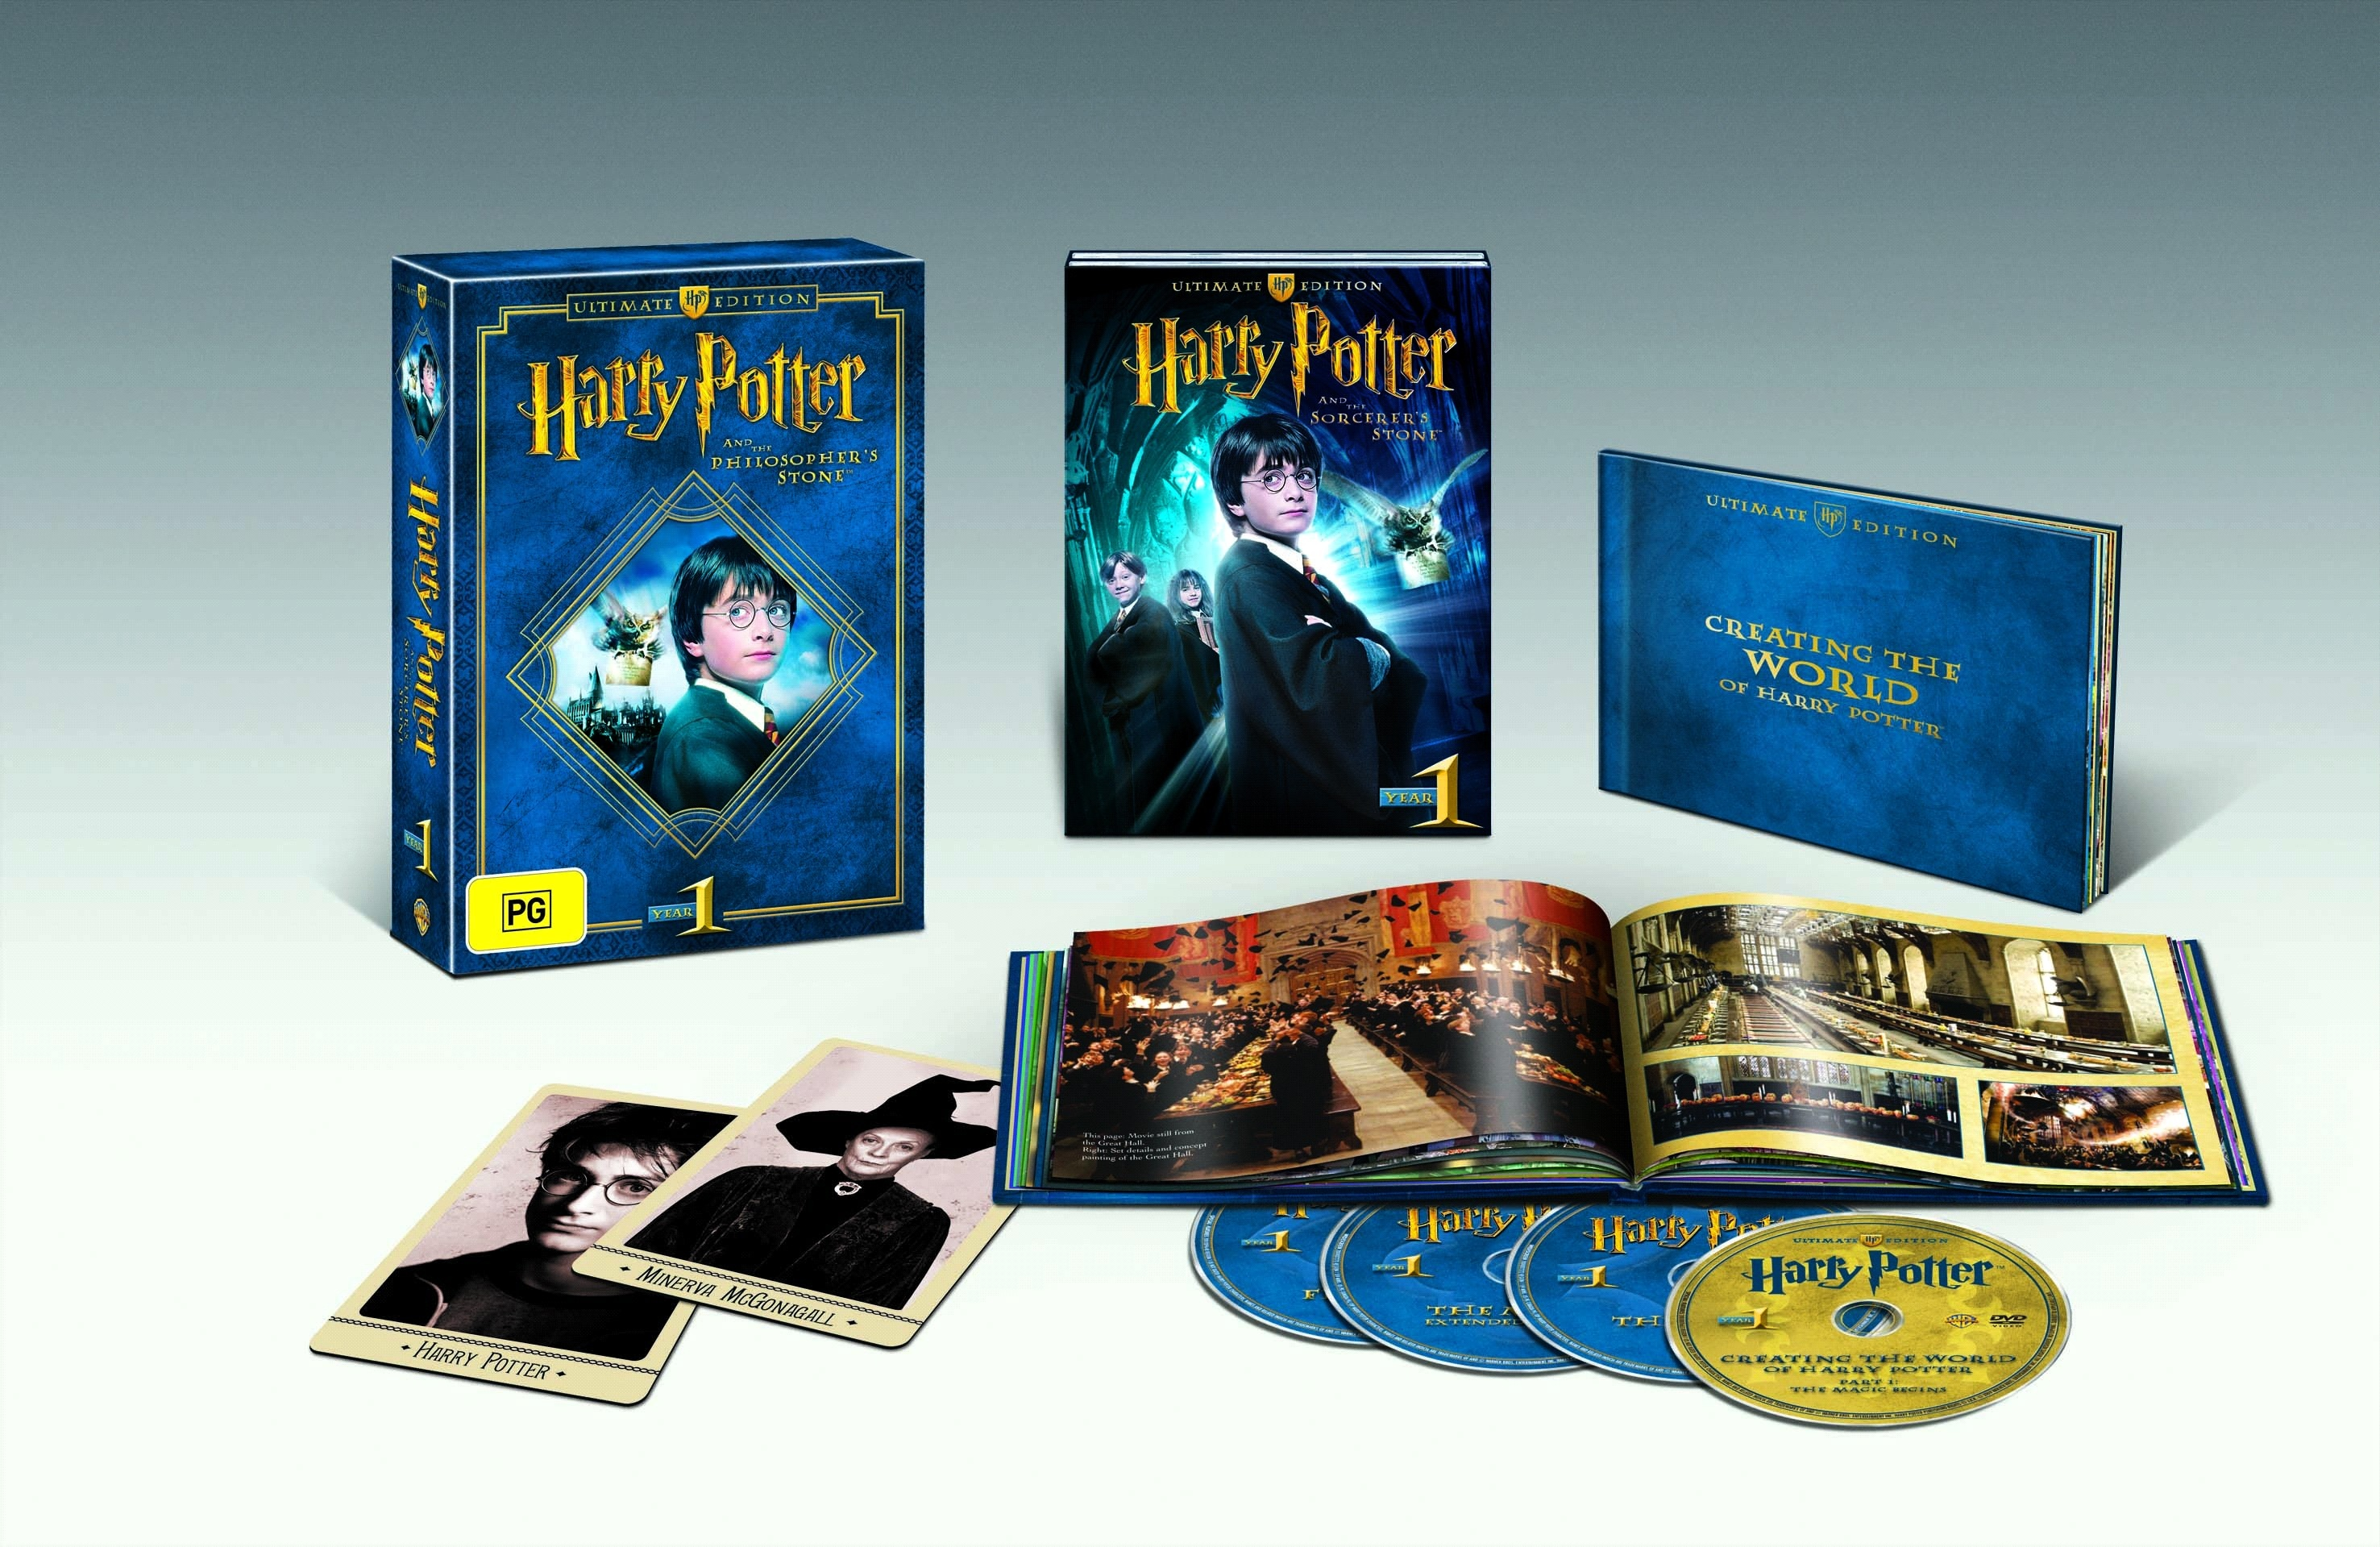 Harry Potter and the Philosopher's Stone (3 Disc Collector's Edition)